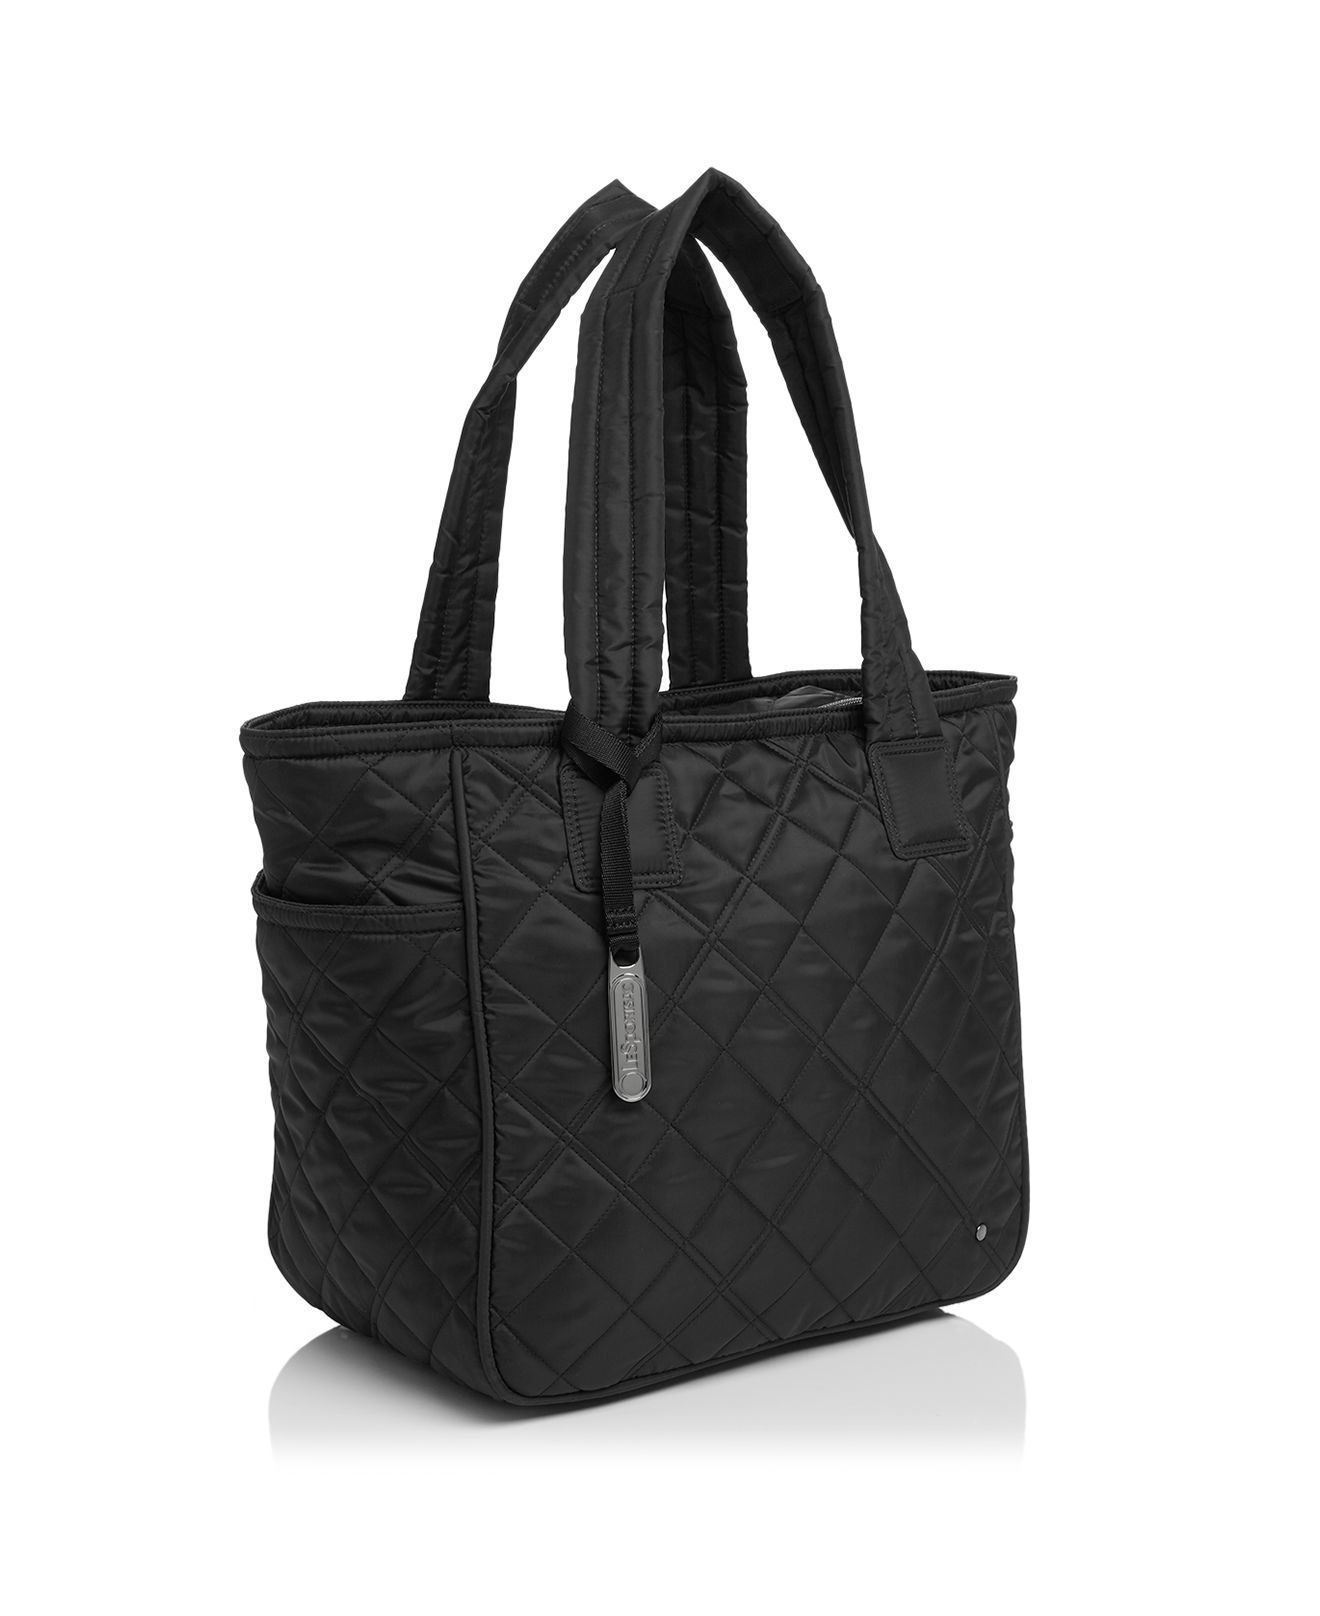 LeSportsac Synthetic City Chelsea Tote in Black